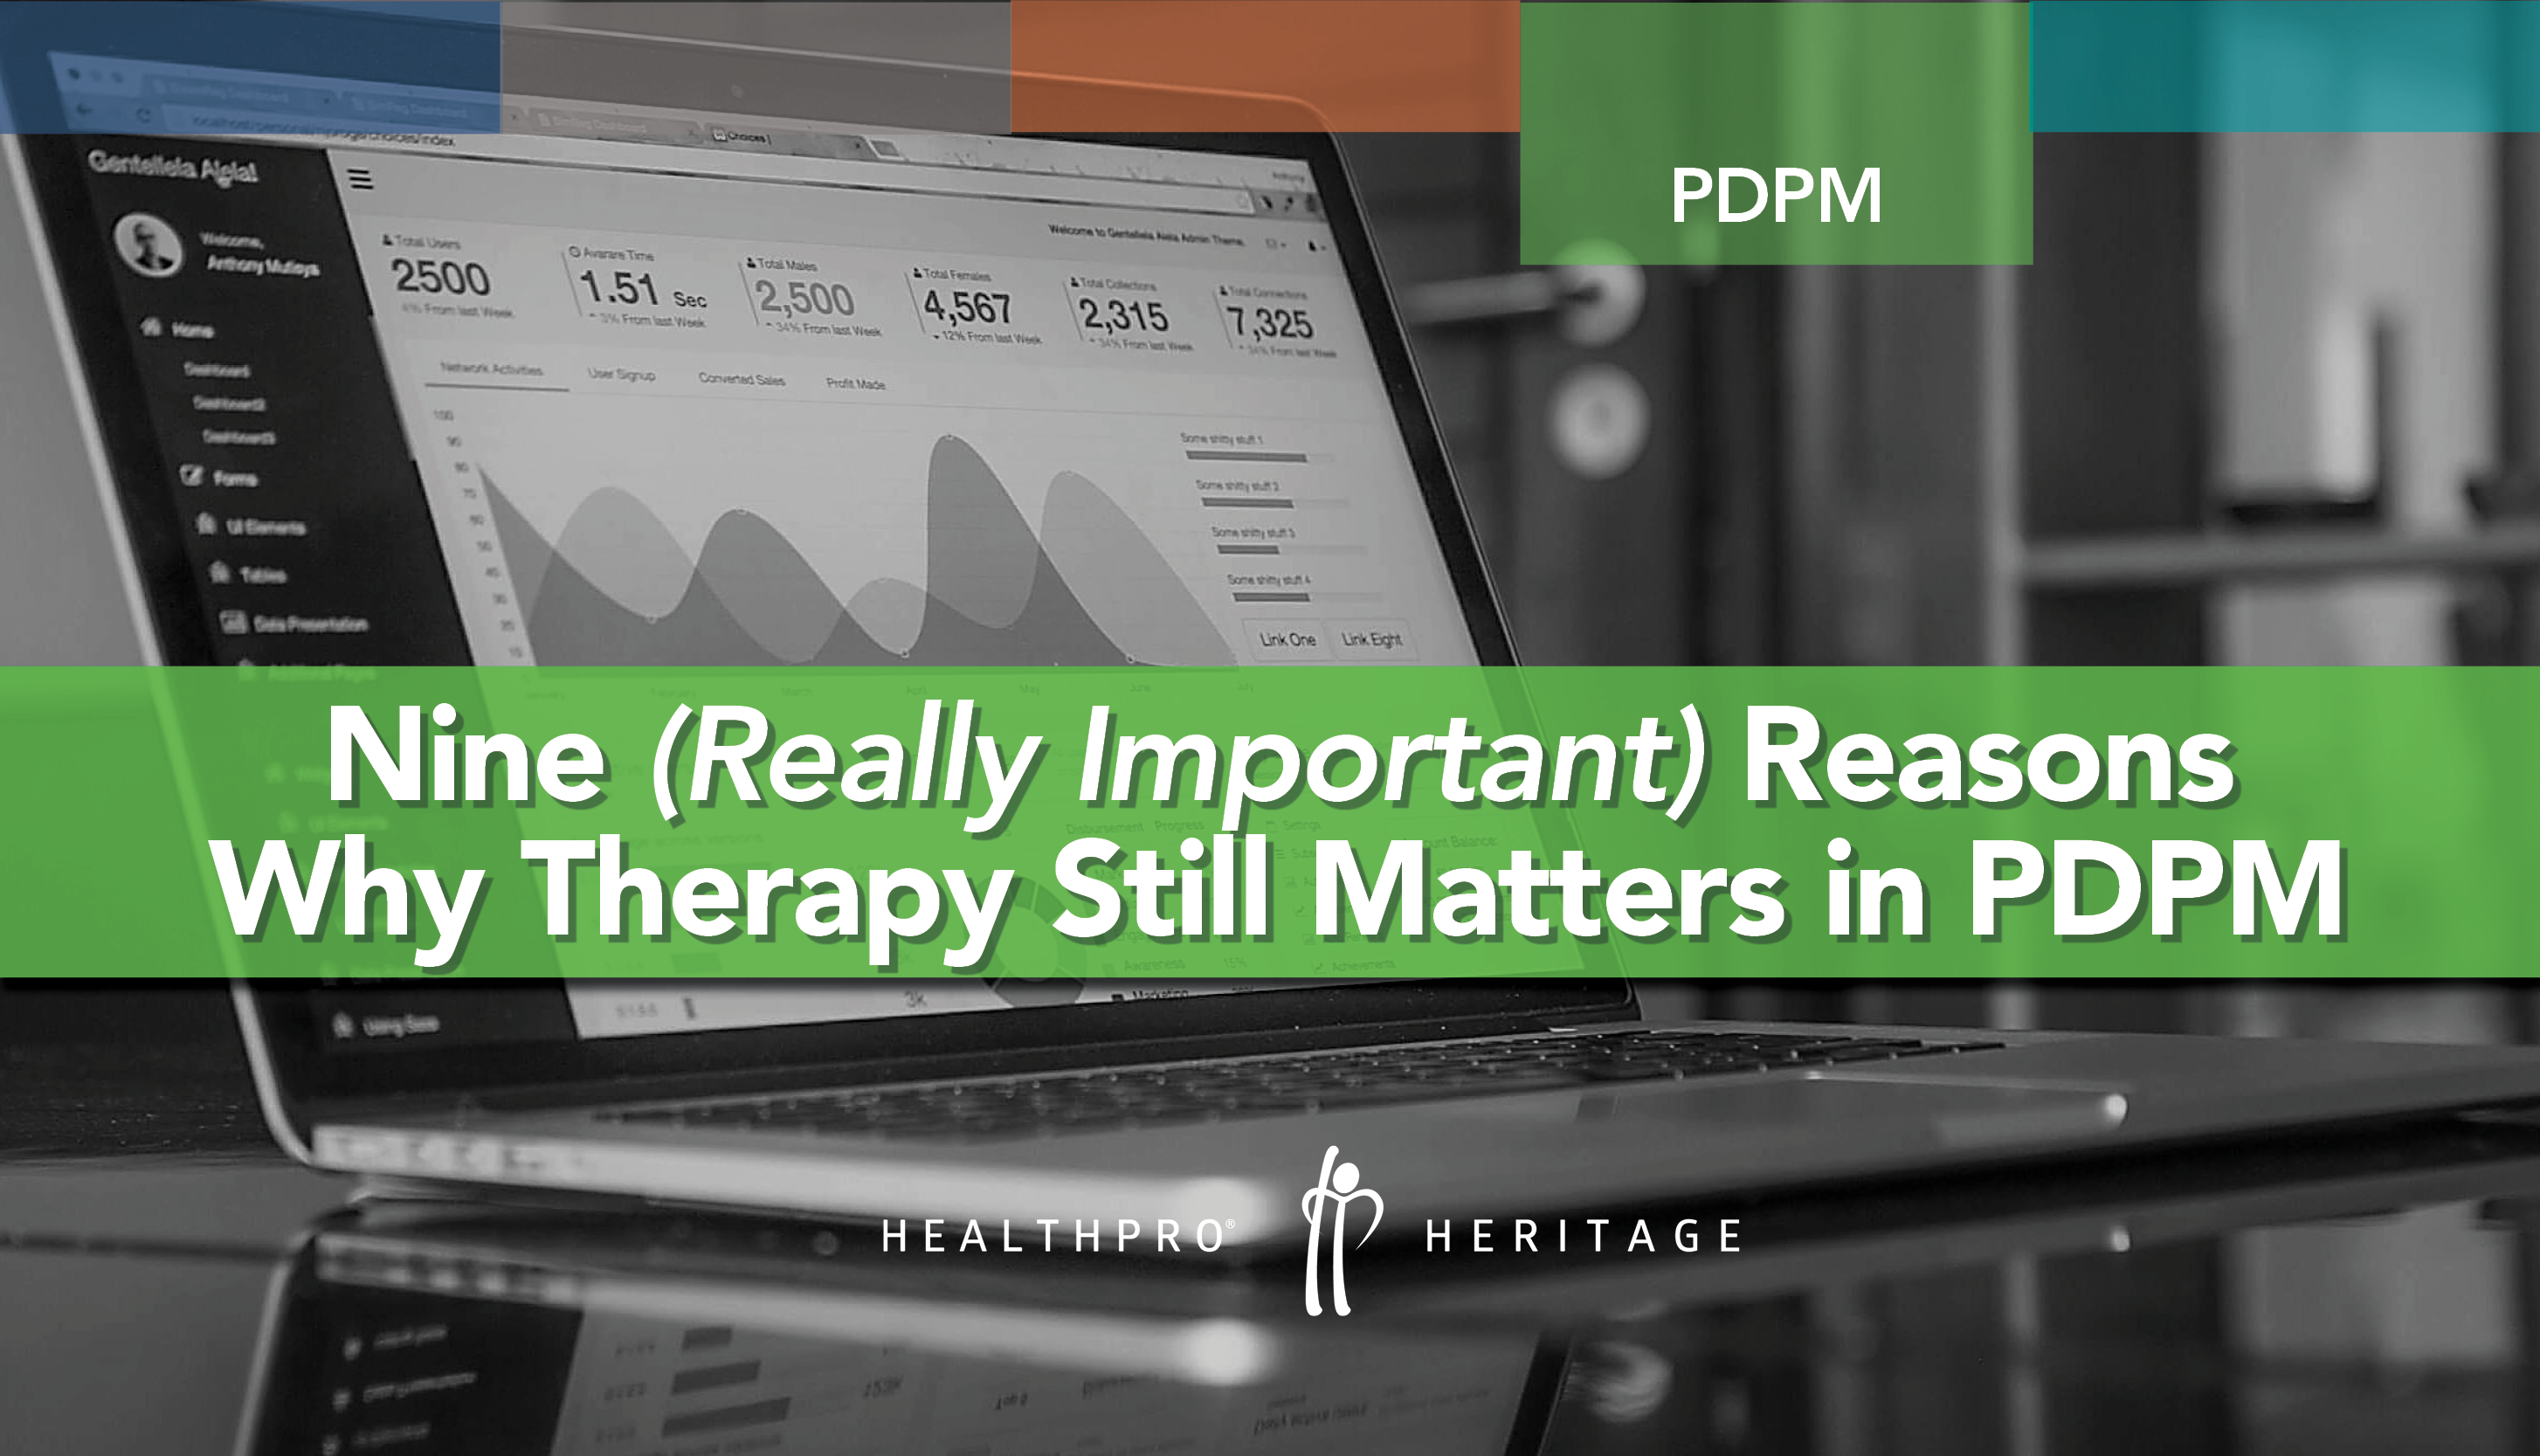 Nine (Really Important) Reasons Why Therapy Still Matters in